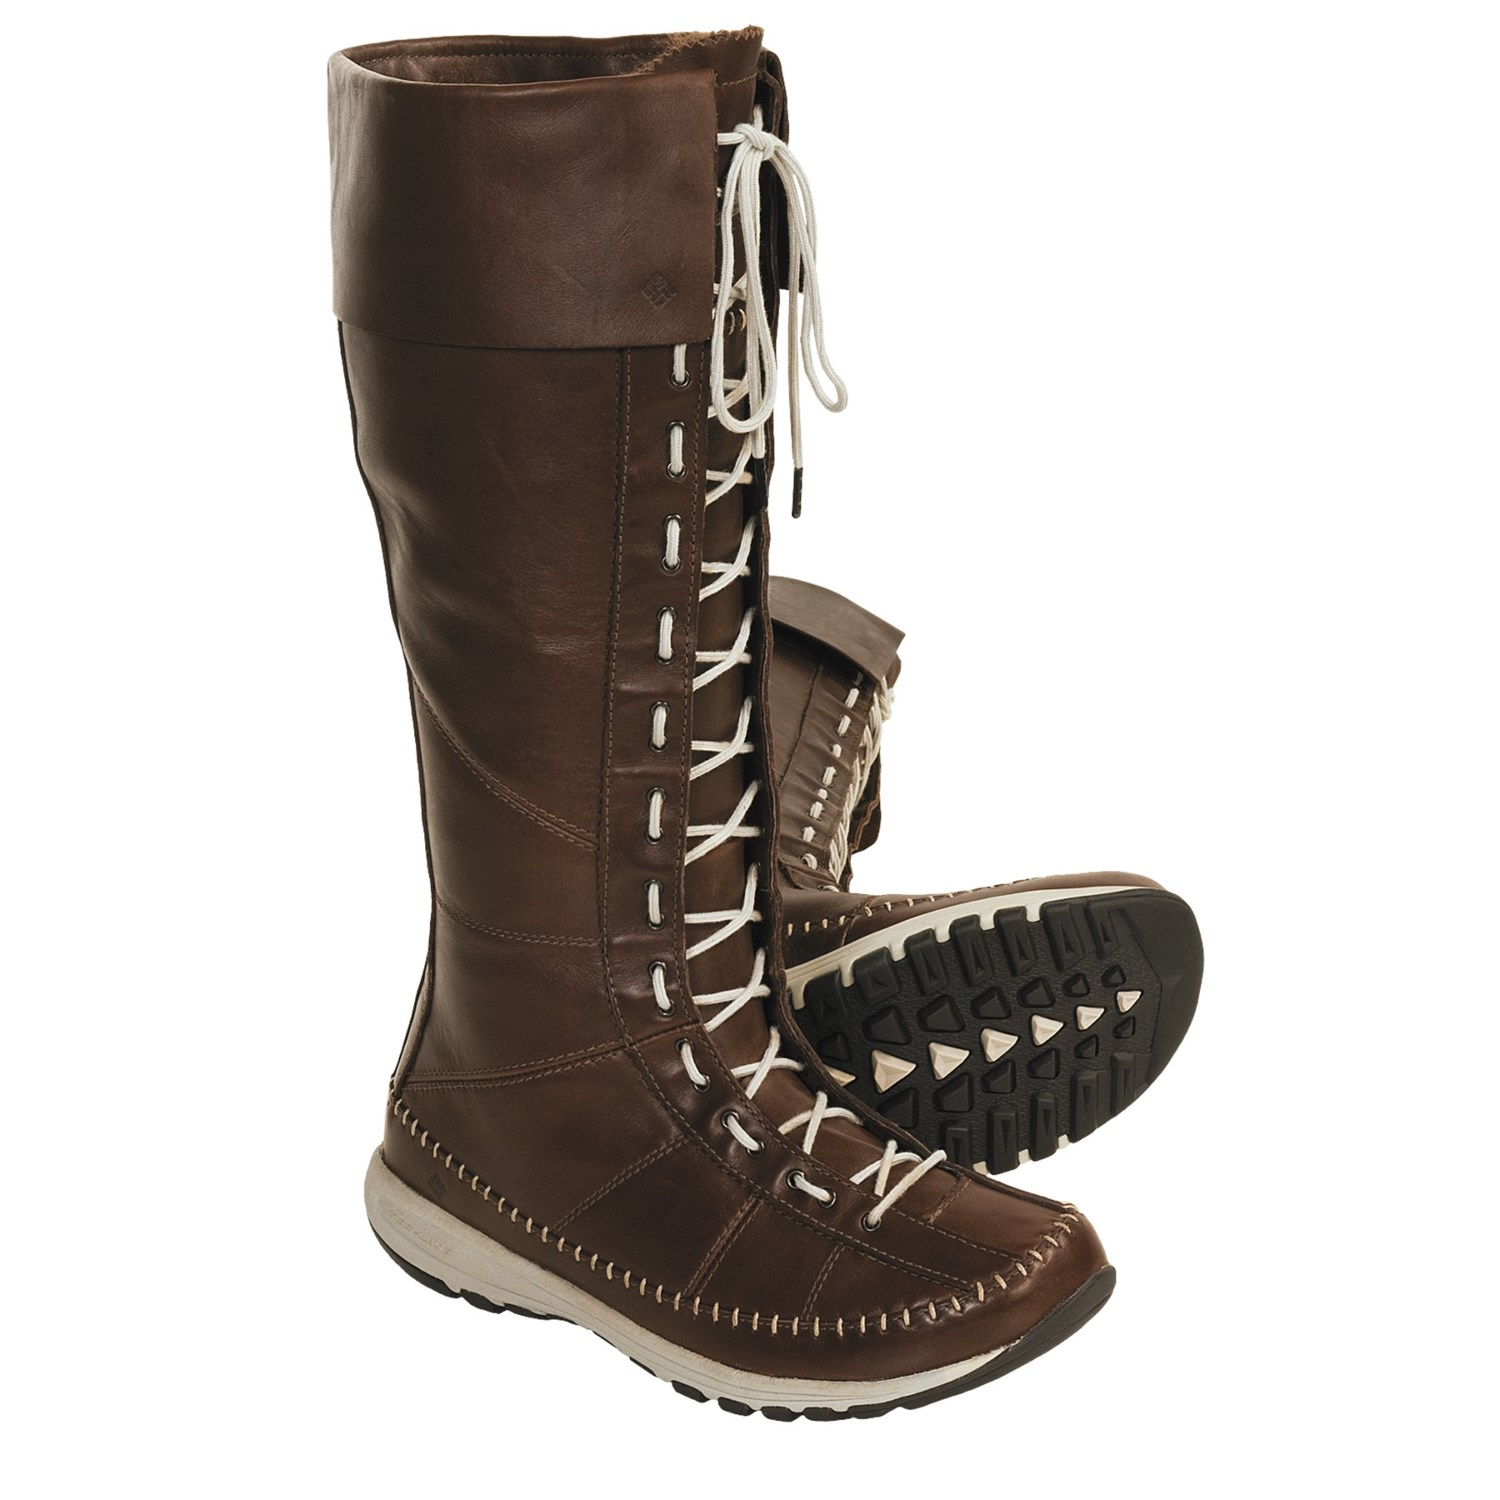 Womens Winter Boots And Shoes | Planetary Skin Institute